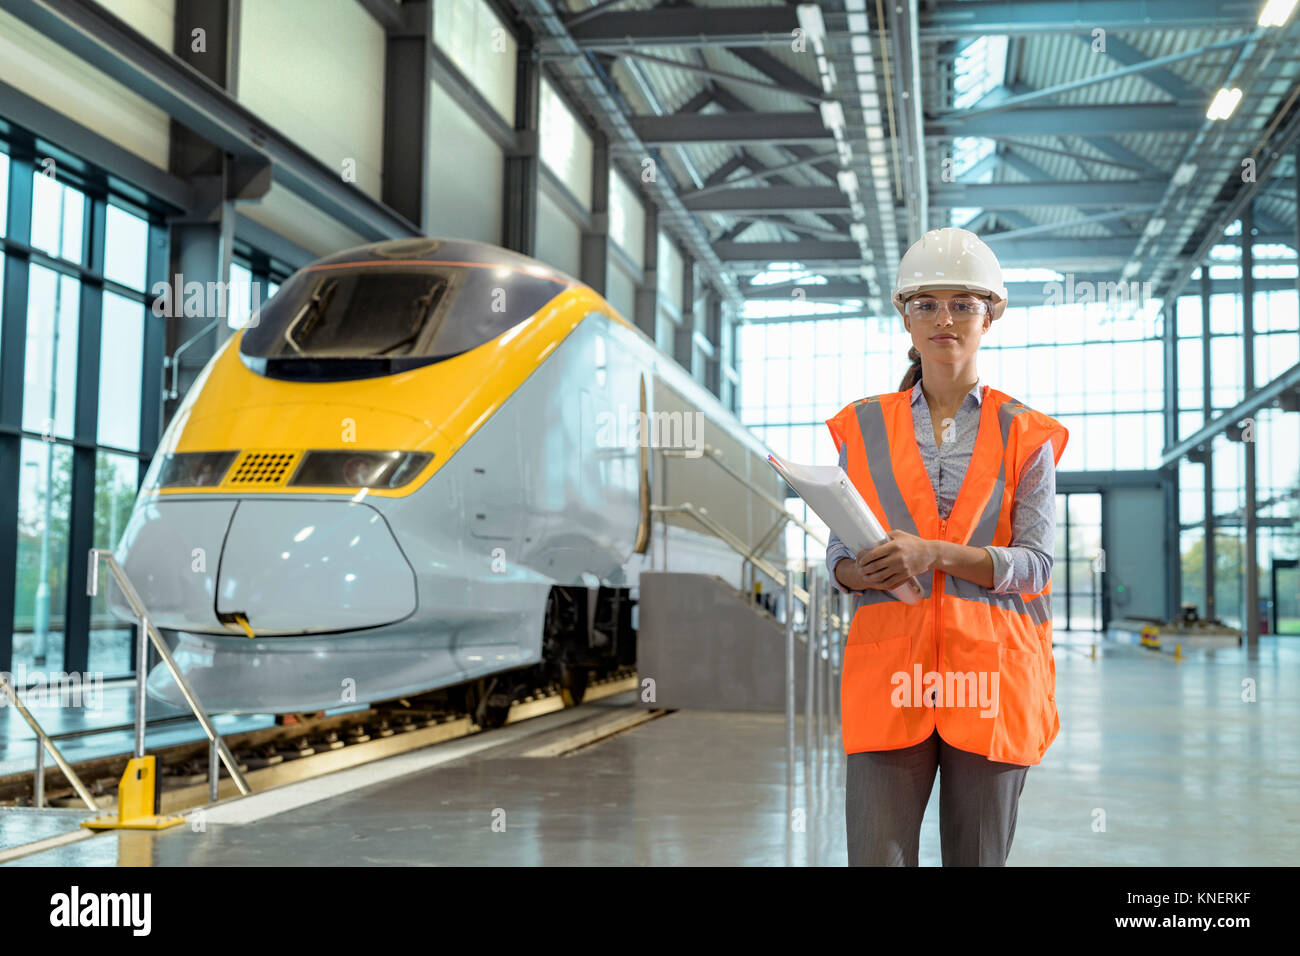 Portrait of female apprentice at railway engineering facility - Stock Image